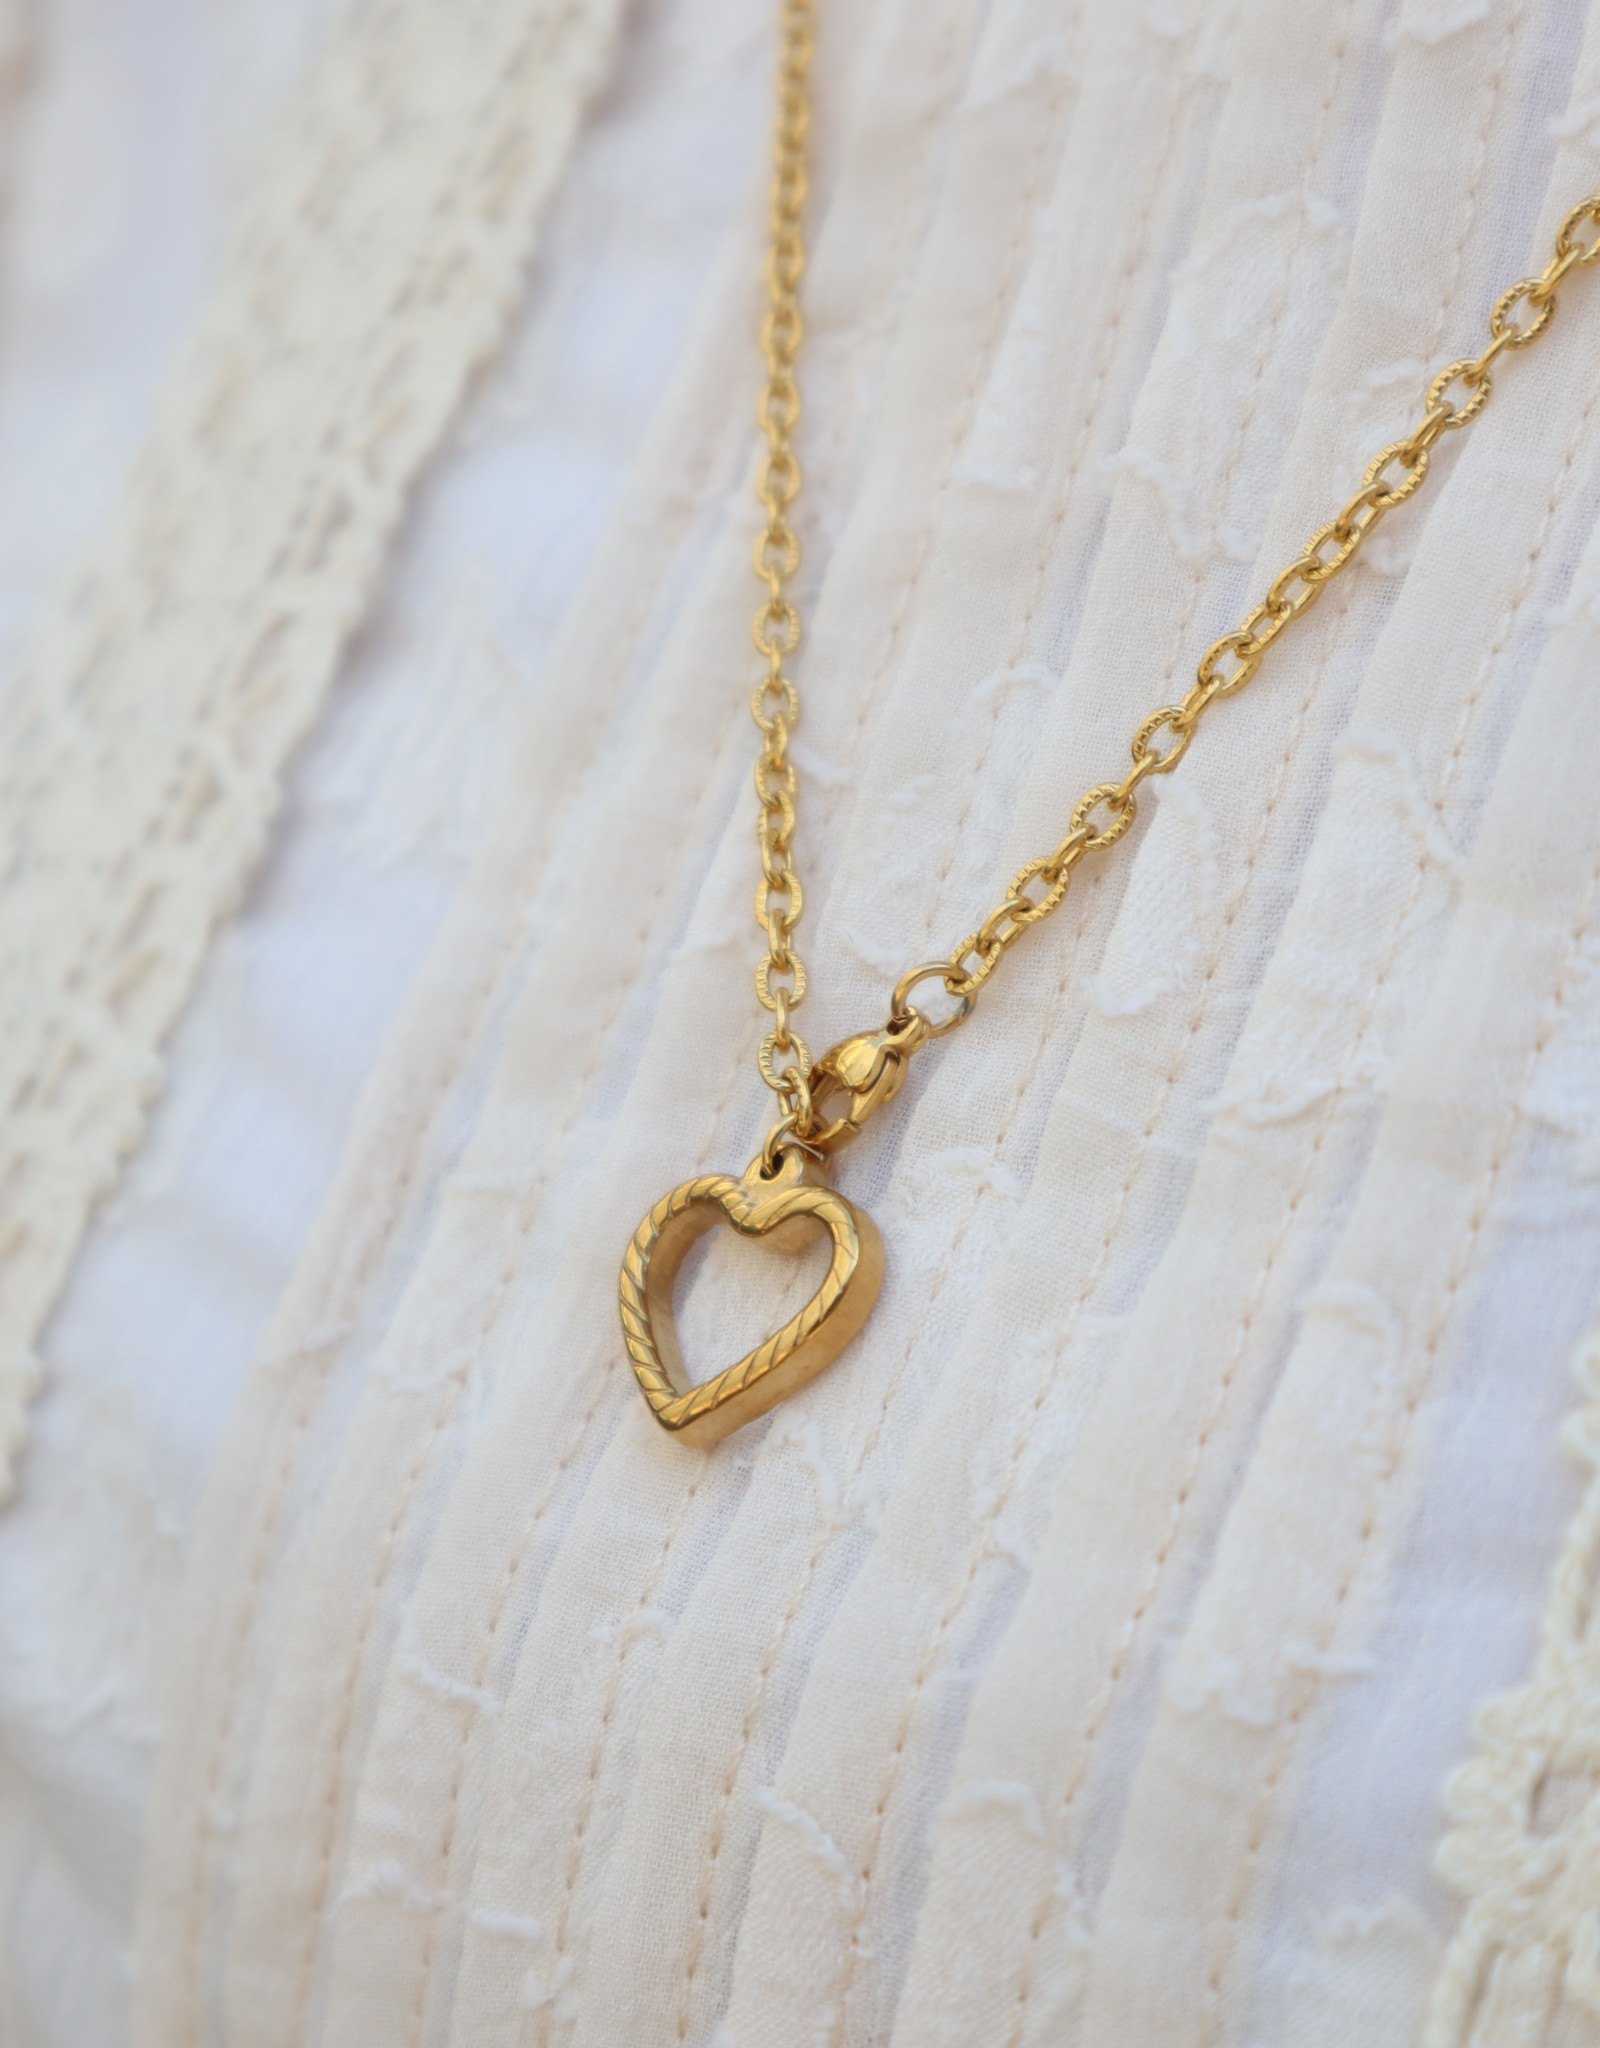 2 The Moon 'n Back 2 The Moon 'n Back Necklace Golden Big Chain Heart